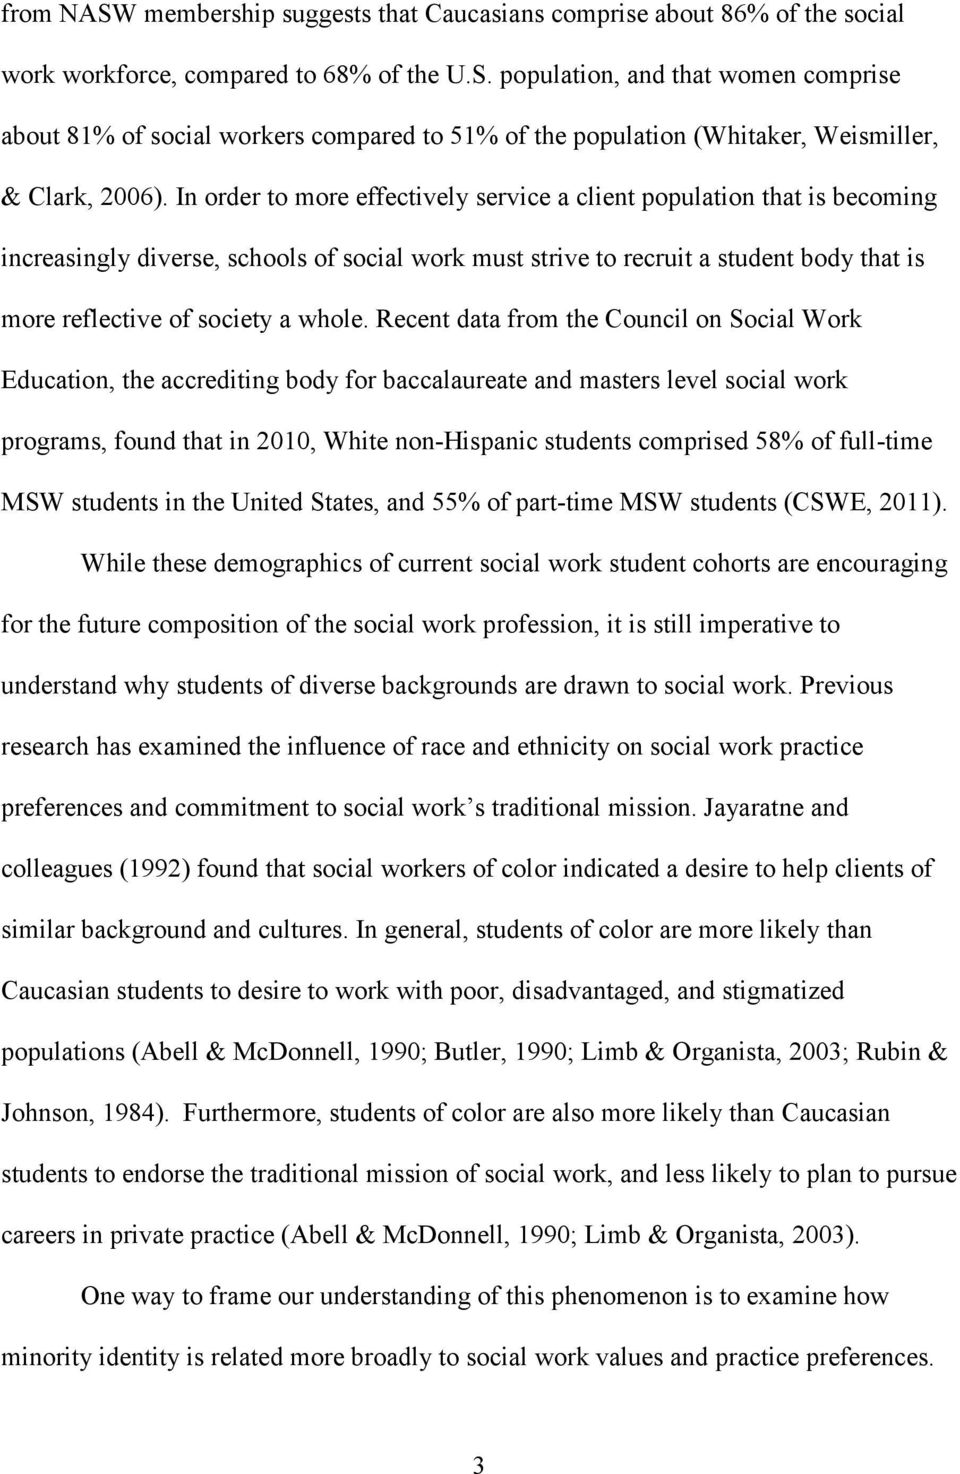 Recent data from the Council on Social Work Education, the accrediting body for baccalaureate and masters level social work programs, found that in 2010, White non-hispanic students comprised 58% of